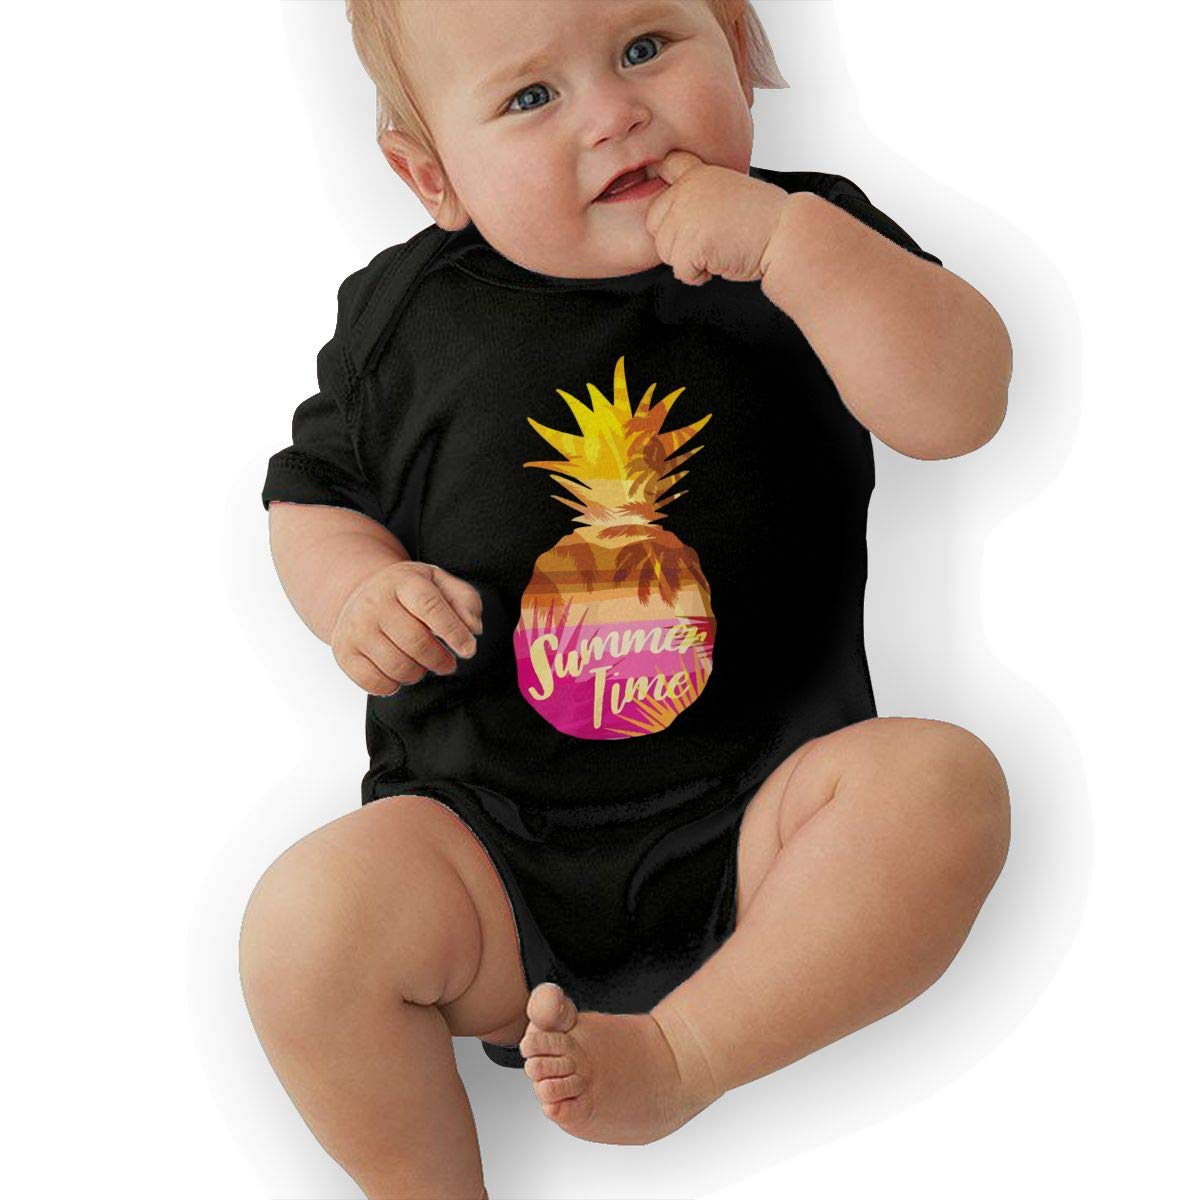 Aloha Hawaii Beach Tropic Pineapple Baby Rompers One Piece Jumpsuits Summer Outfits Clothes Black